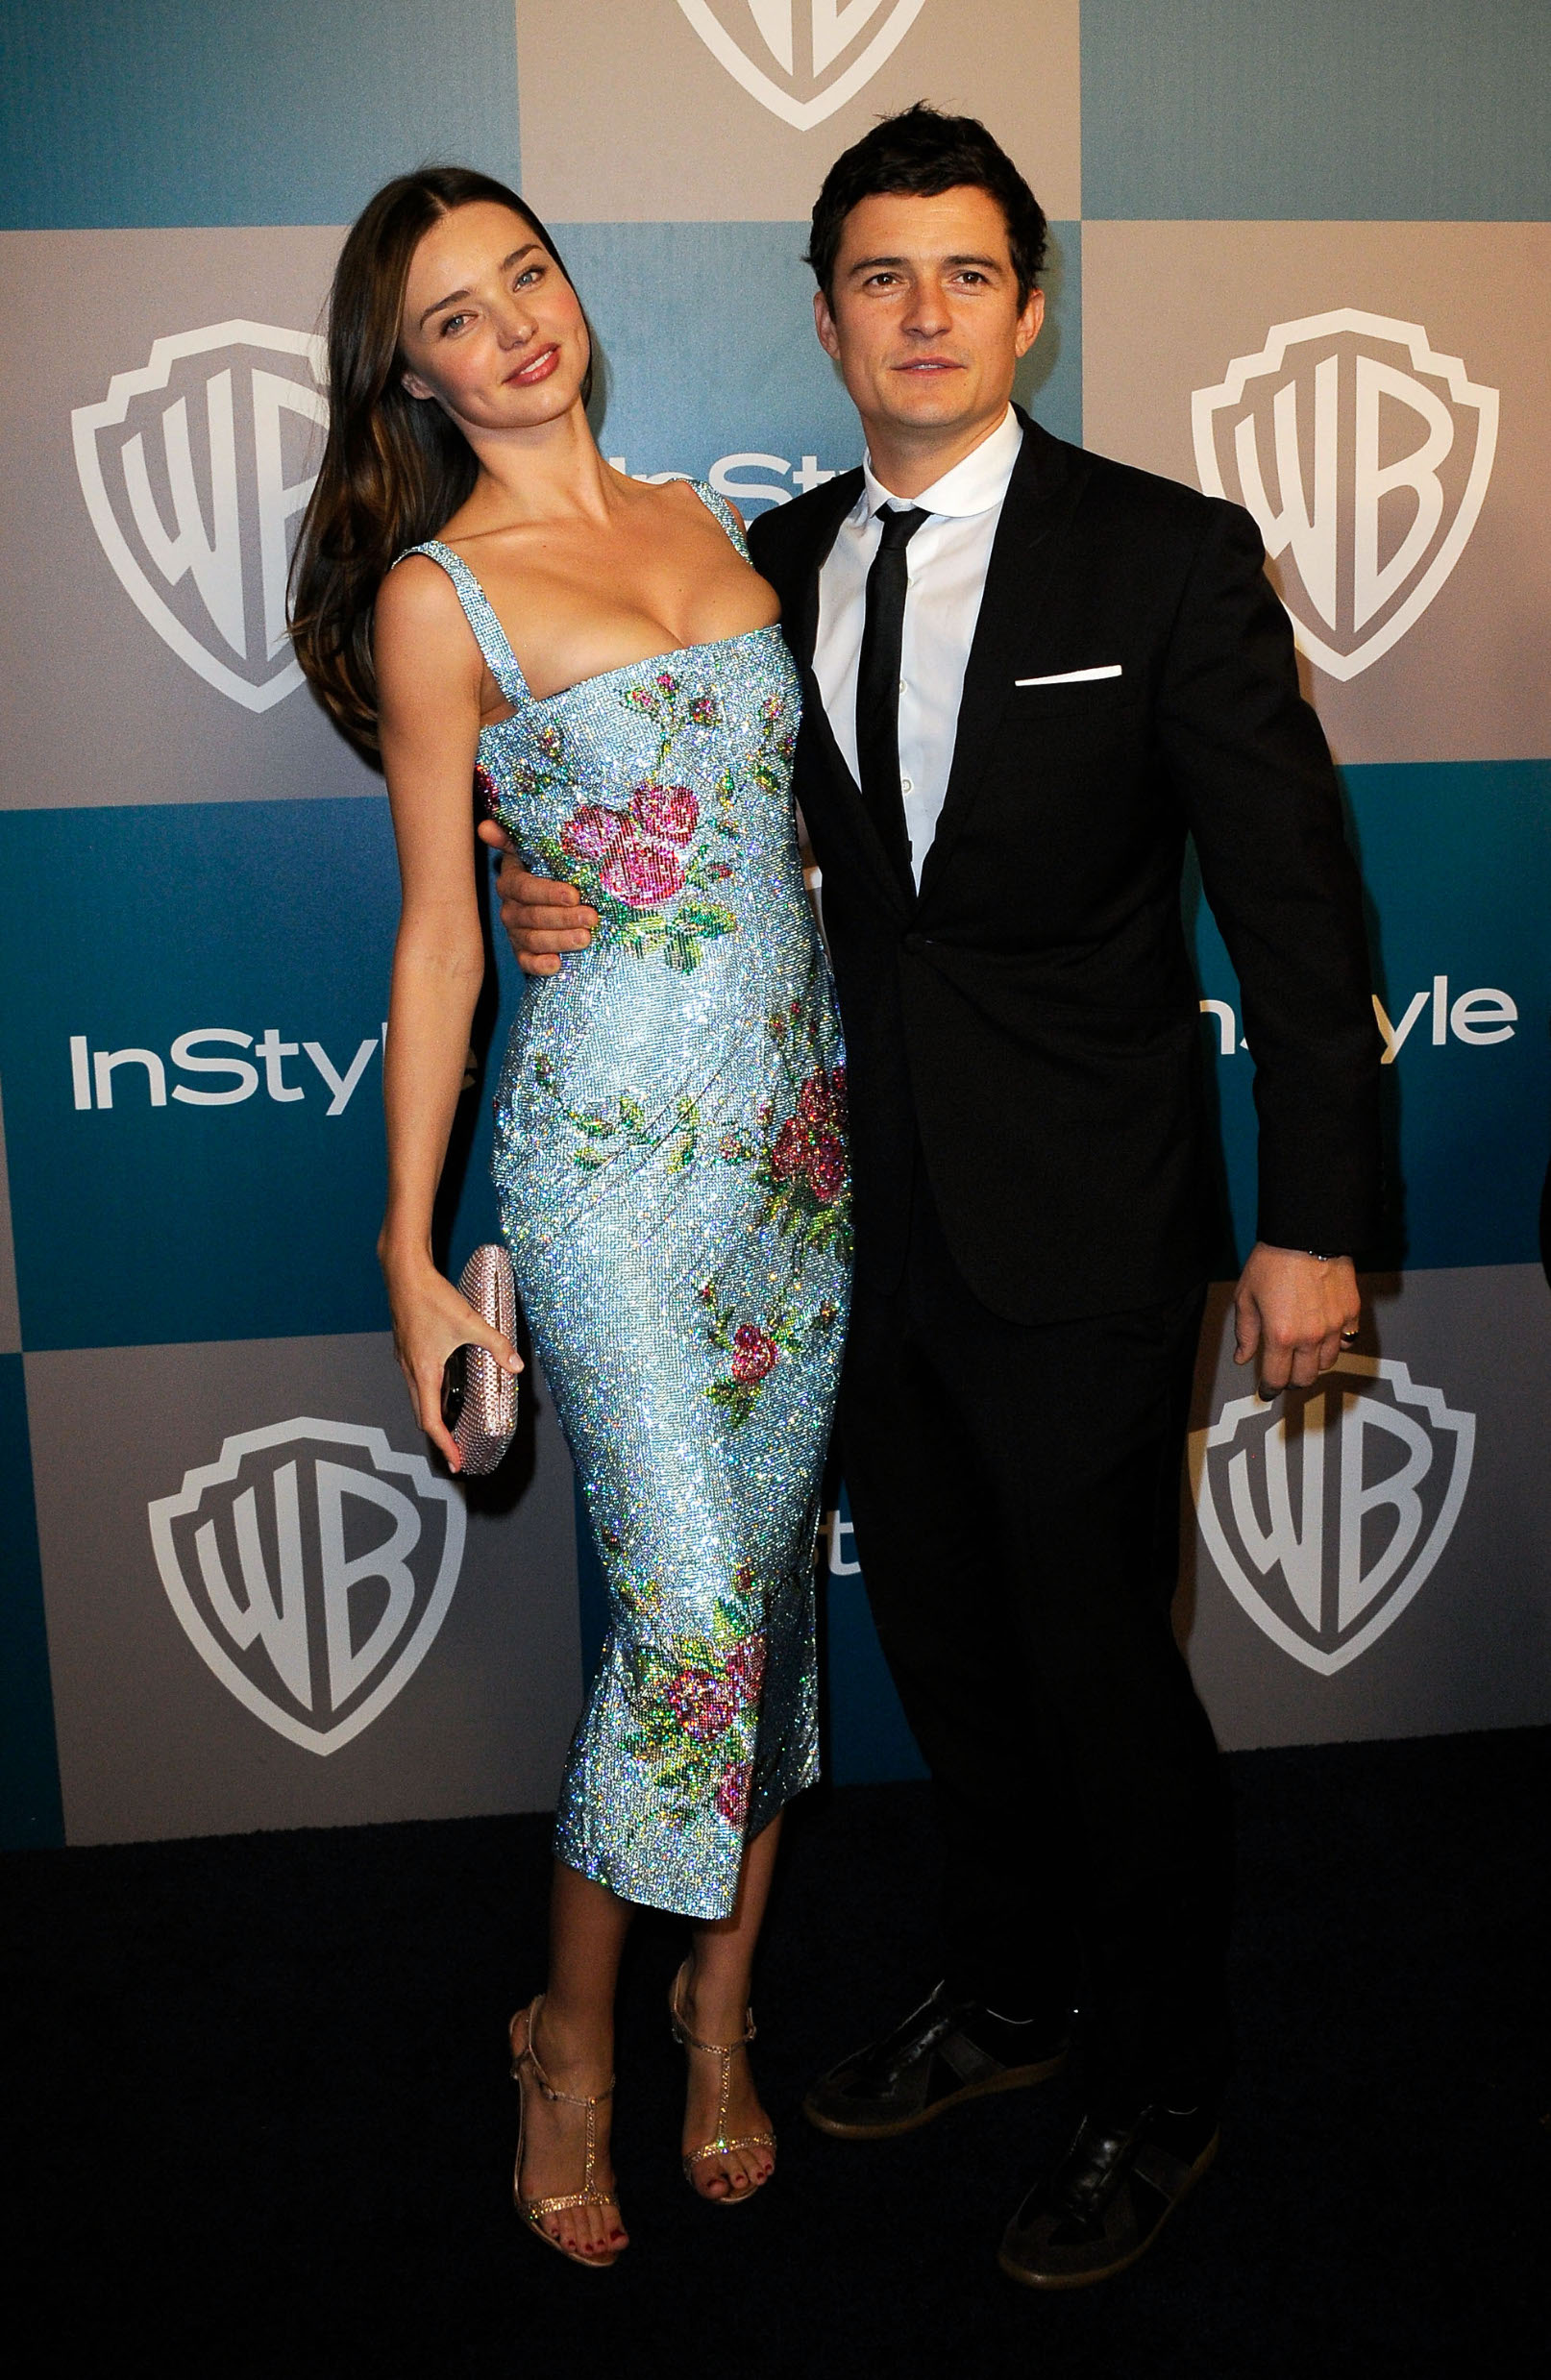 BEVERLY HILLS, CA - JANUARY 15:  Model Miranda Kerr and Orlando Bloom arrive at 13th Annual Warner Bros. And InStyle Golden Globe Awards After Party at The Beverly Hilton hotel on January 15, 2012 in Beverly Hills, California.  (Photo by Kevork Djansezian/Getty Images)